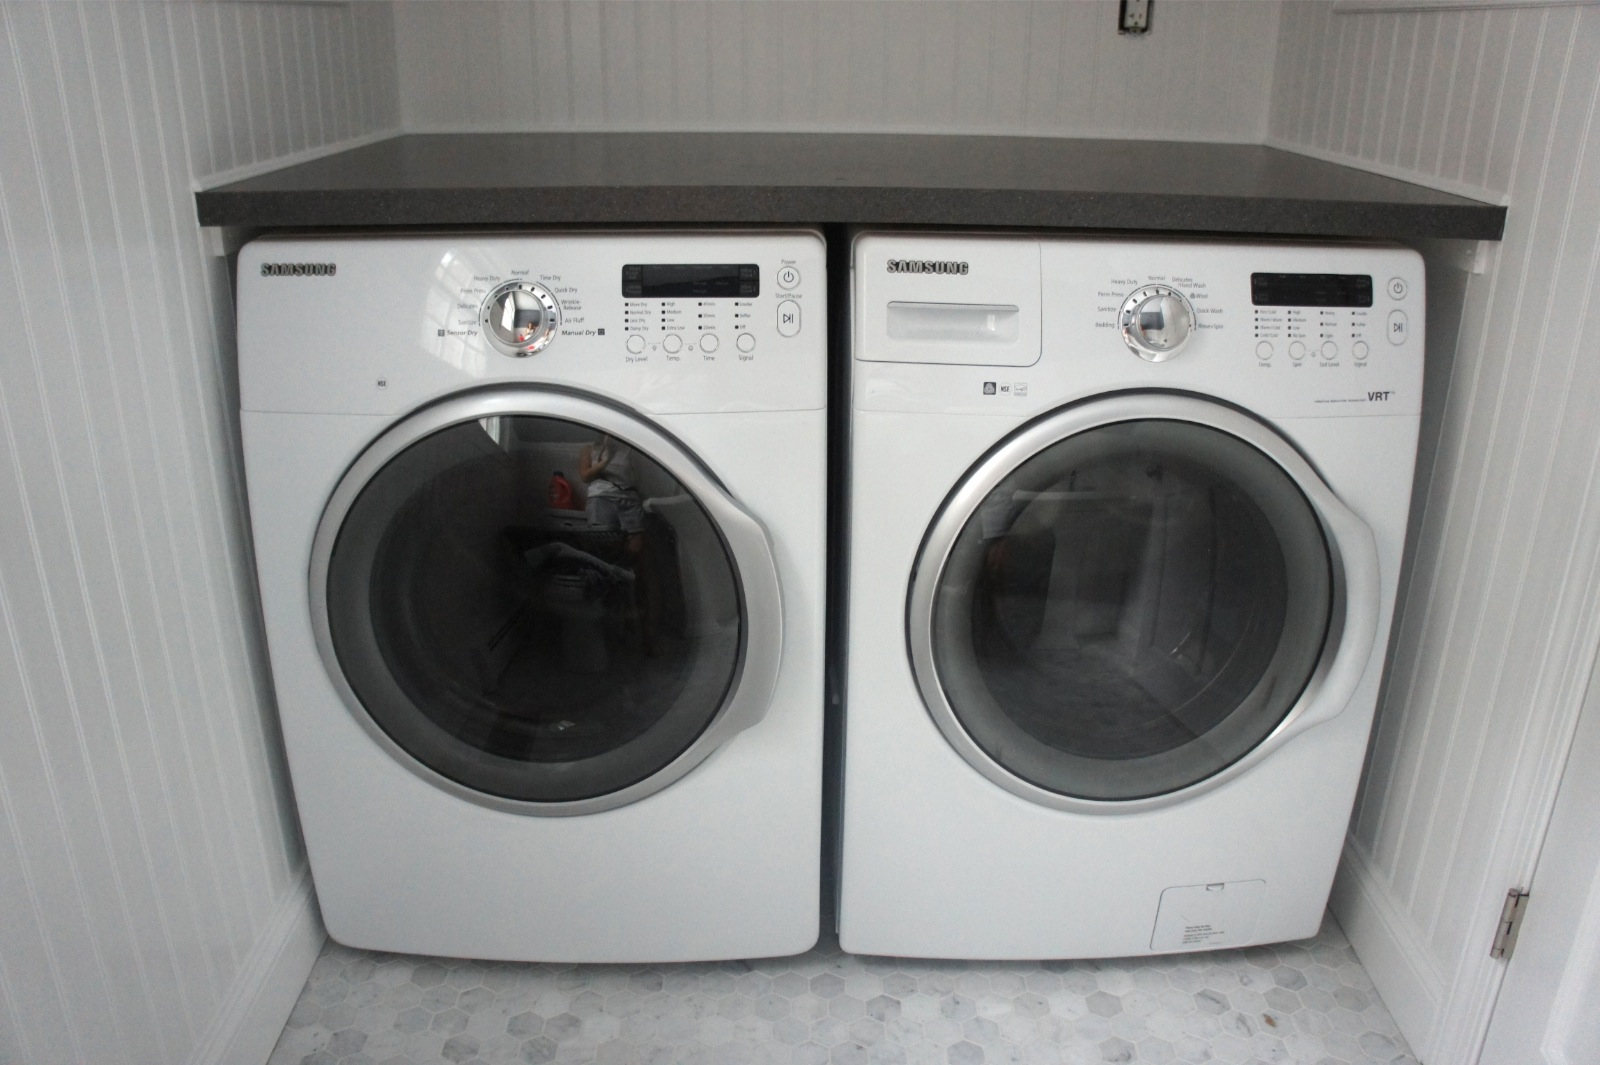 Small Spaces Washer And Dryer | Homes Decoration Tips